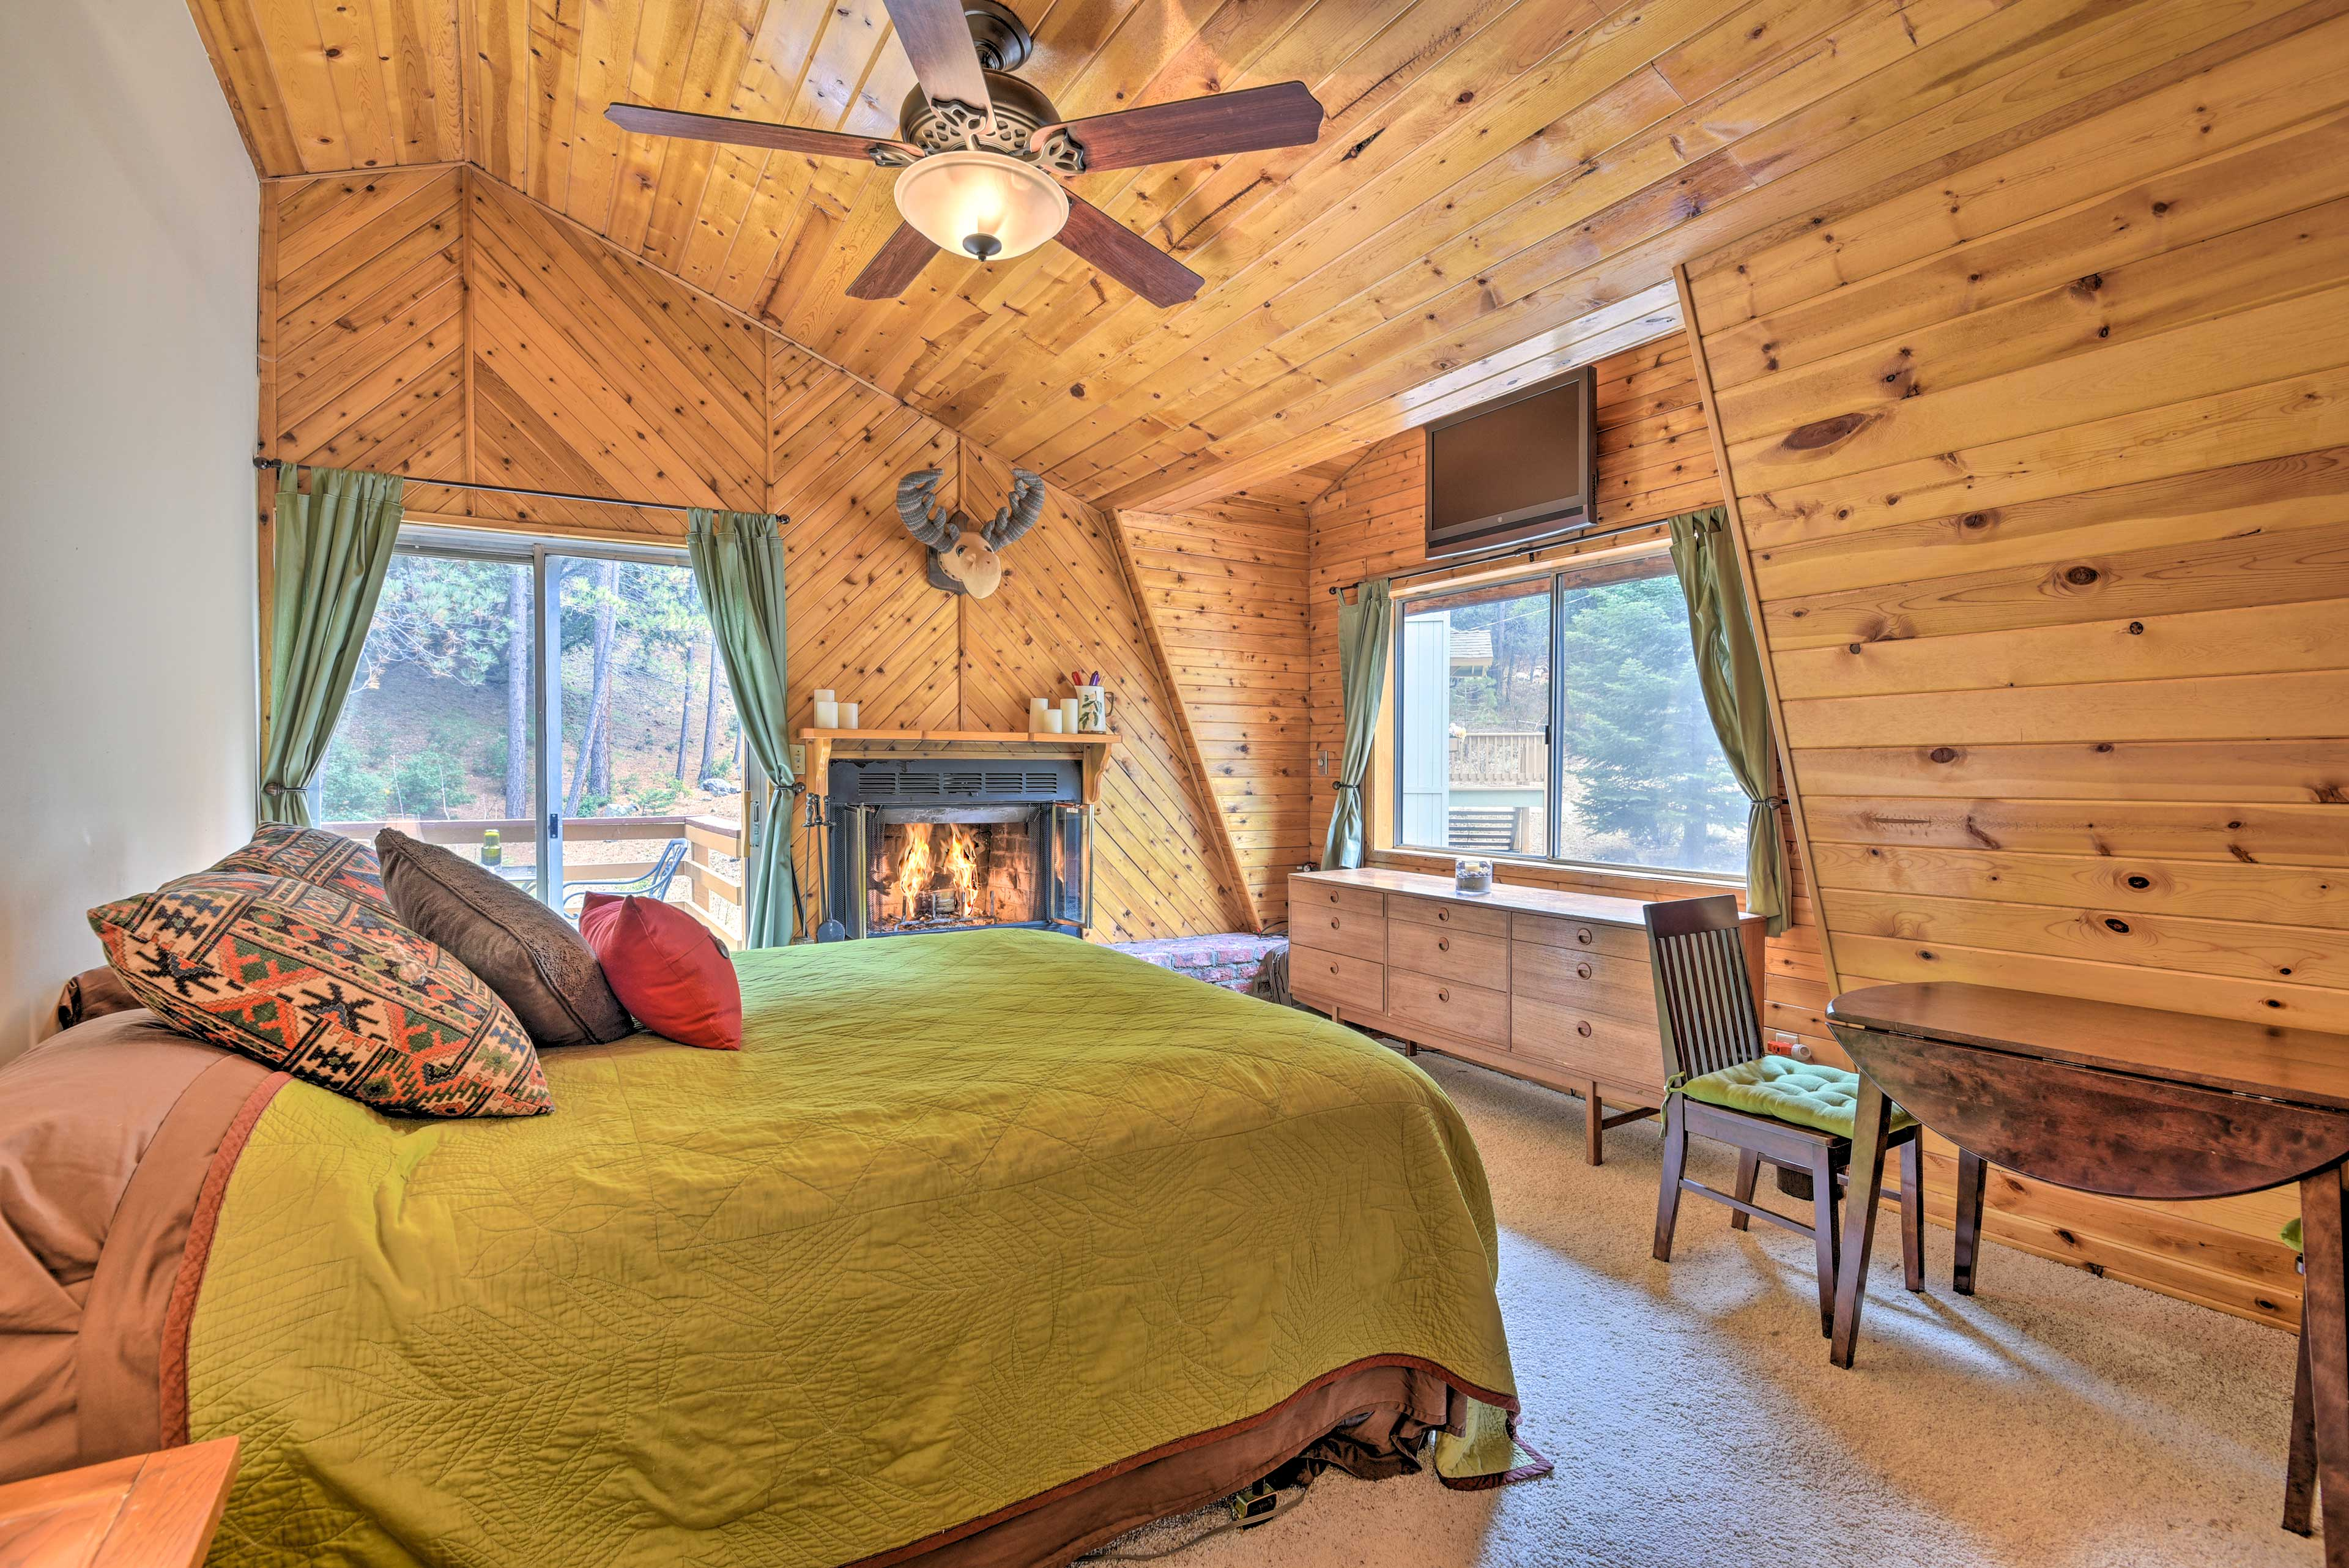 The master bedroom features a queen bed, fireplace, and flat-screen cable TV.